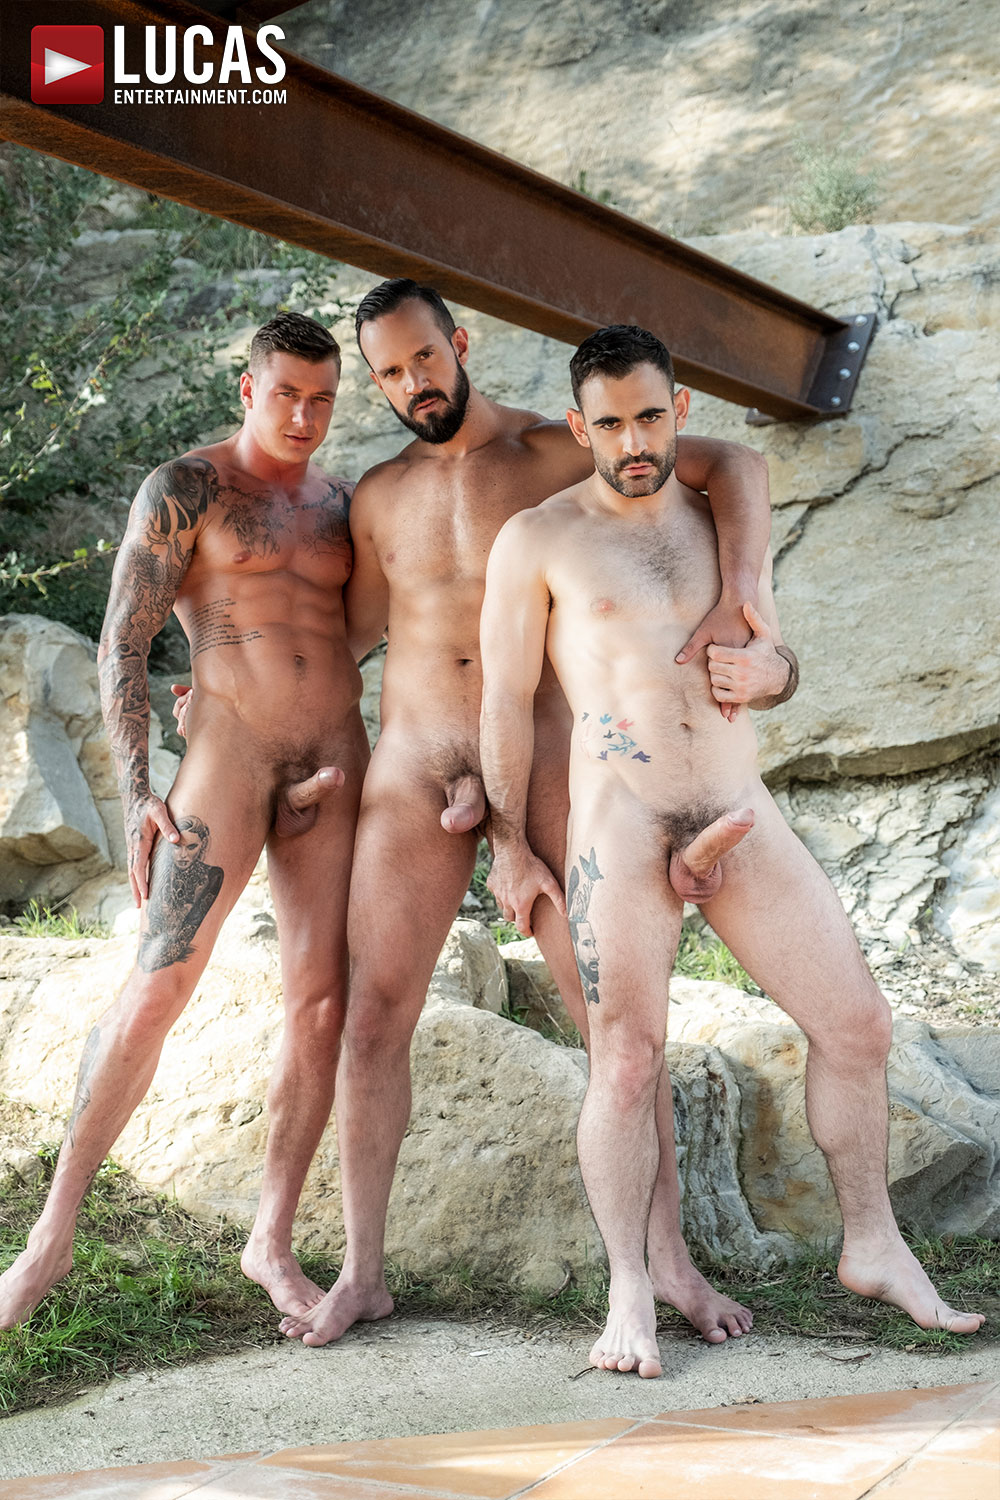 Uncut In The Great Outdoors - Gay Movies - Lucas Entertainment